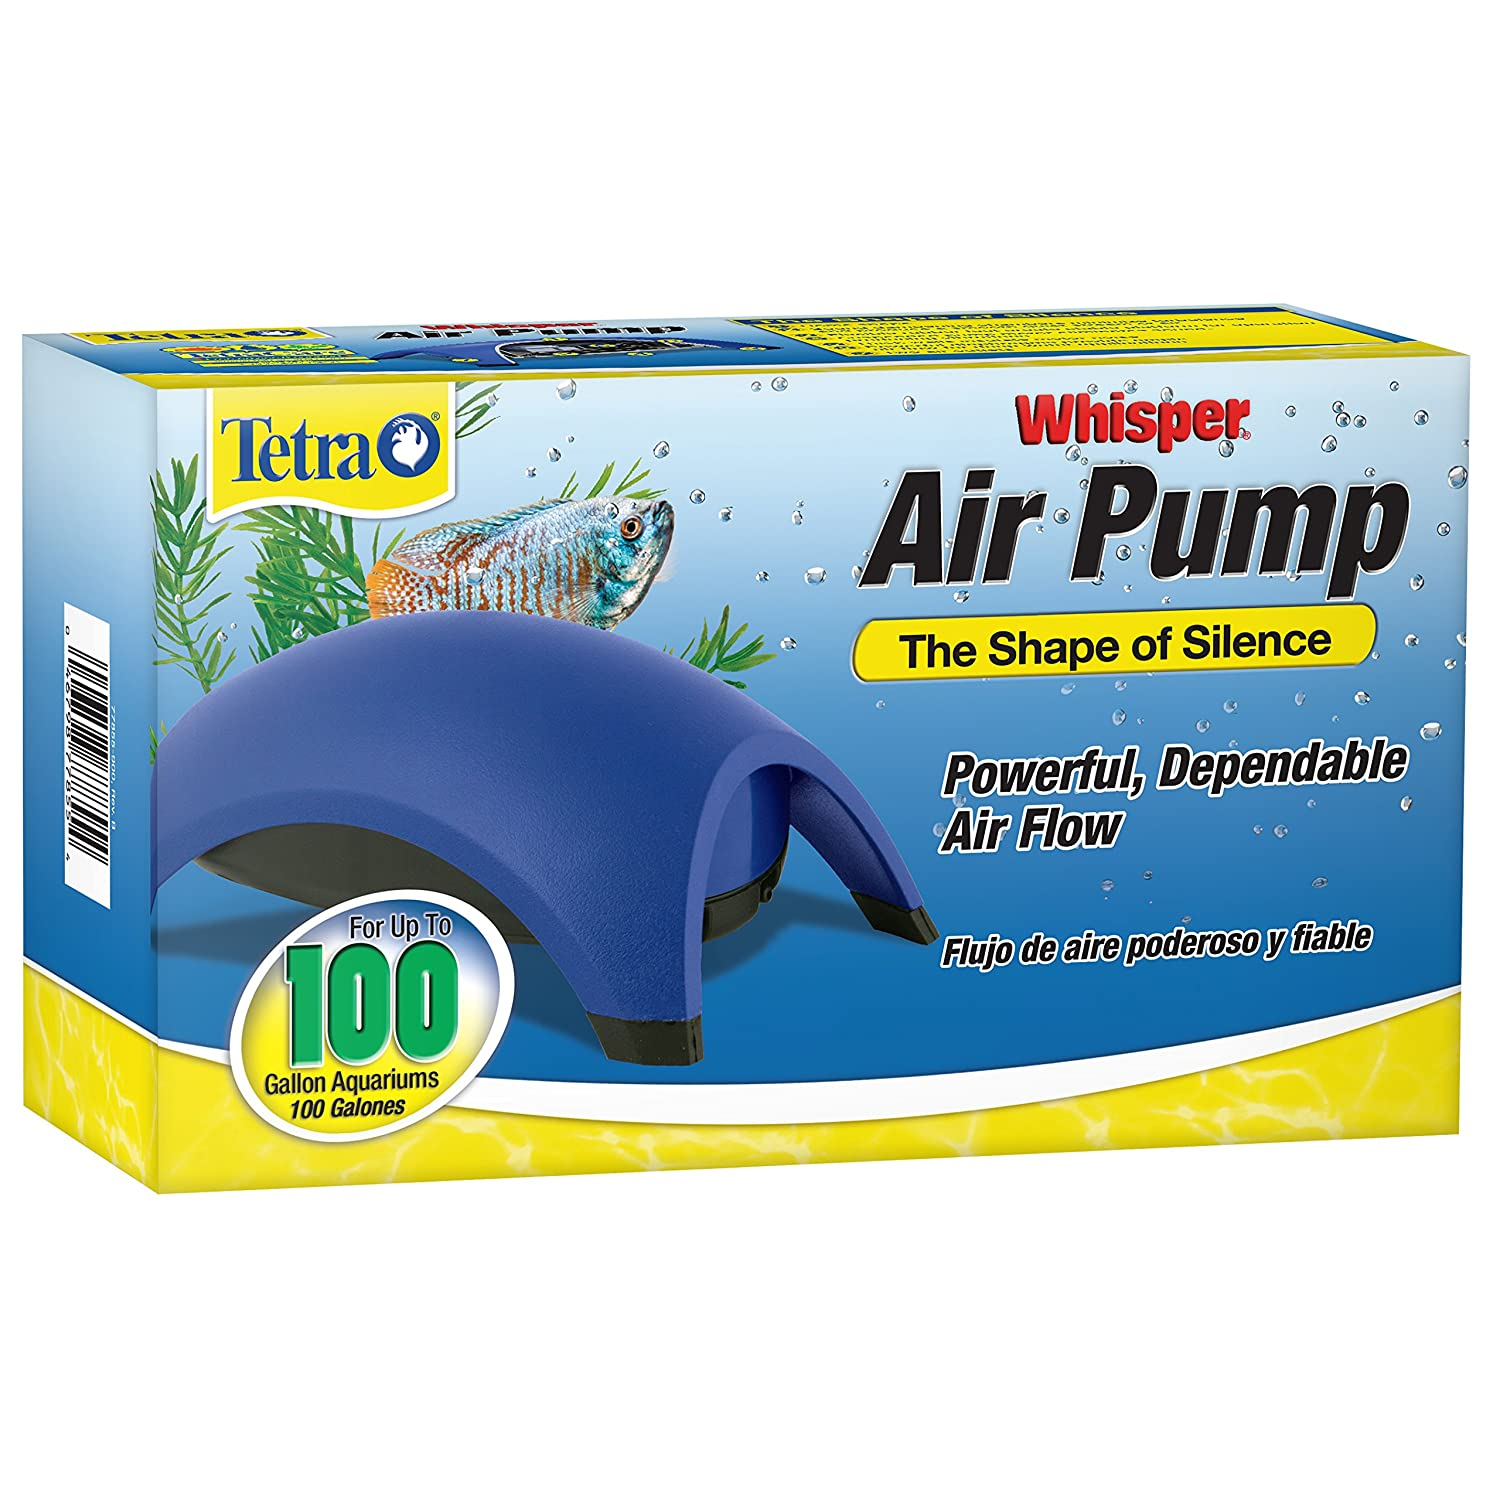 919Nc0VheXL._SL1500_ amazon com tetra 77855 whisper air pump, 100 gallon aquarium  at readyjetset.co